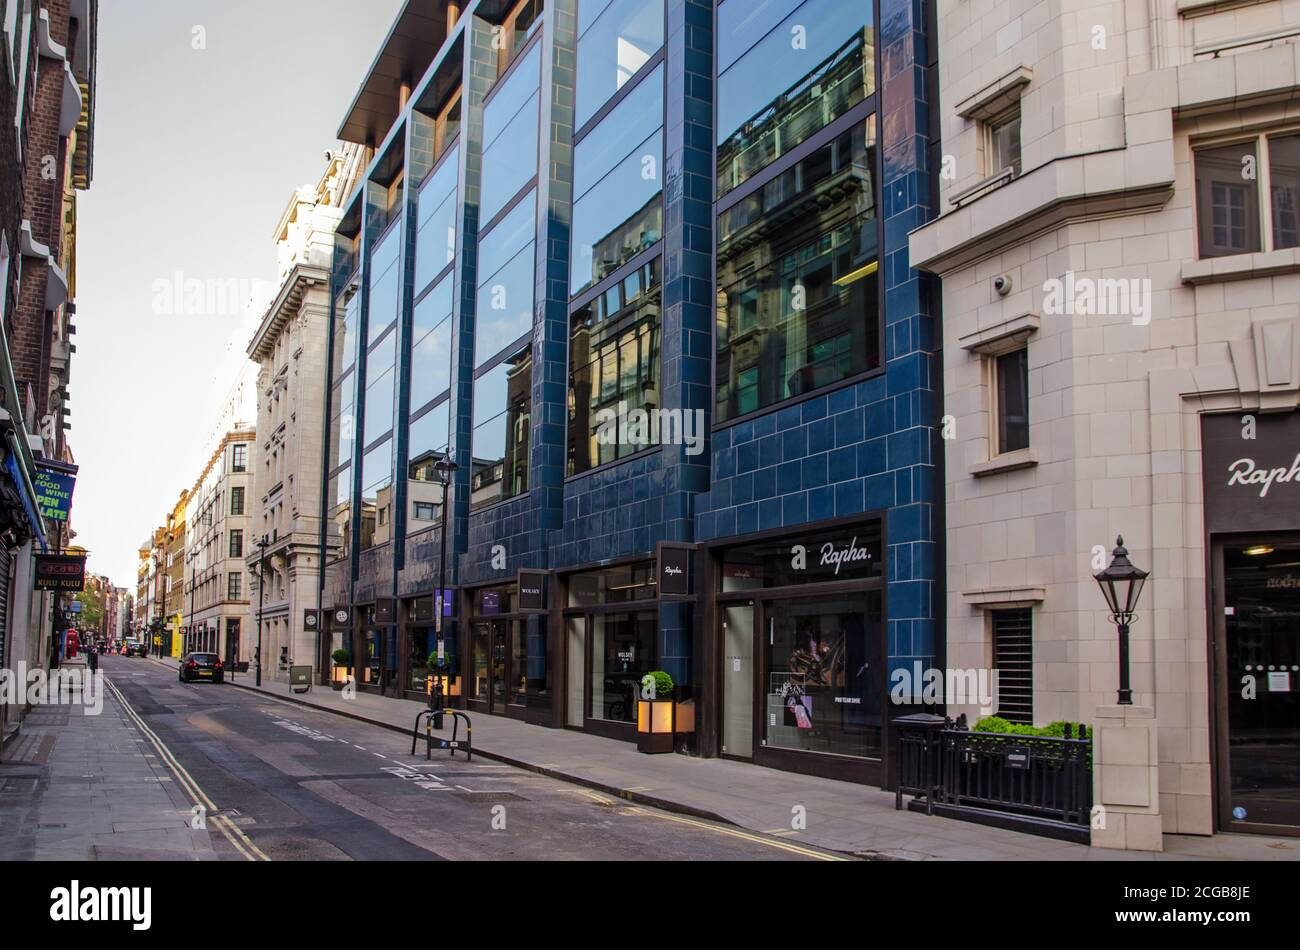 London, UK - April 24, 2020:  view along the normally busy Brewer Street in Soho, Central London during COVID lockdown. Stock Photo